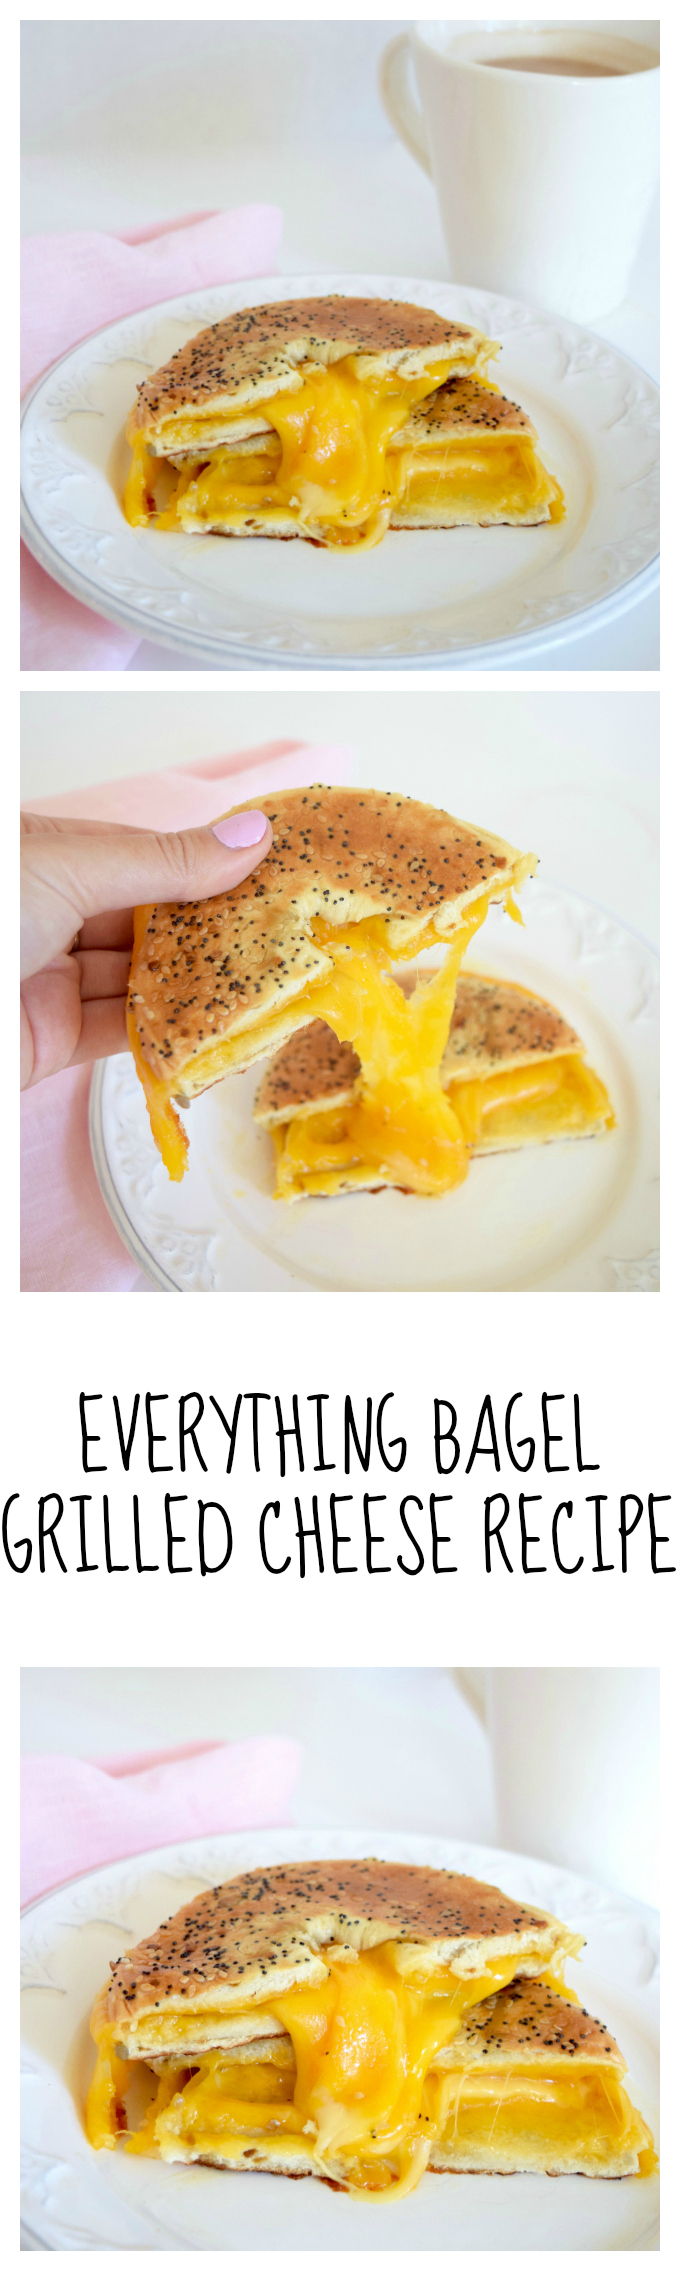 EVERYTHING BAGEL GRILLED CHEESE RECIPE